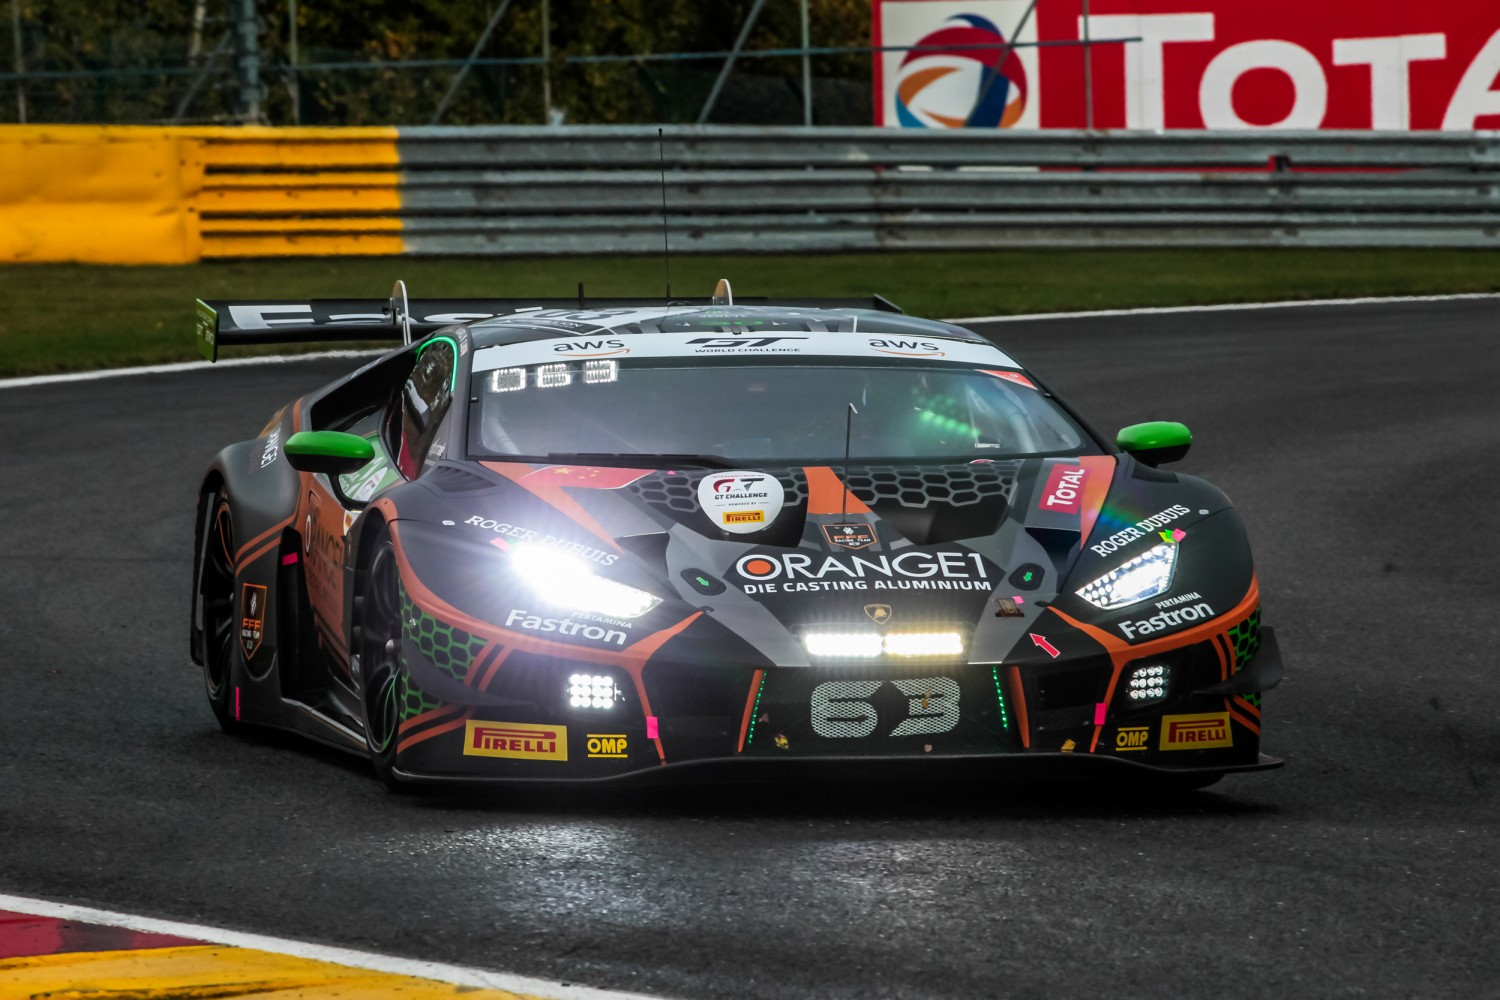 FFF Racing's Caldarelli fastest in first practice at Spa